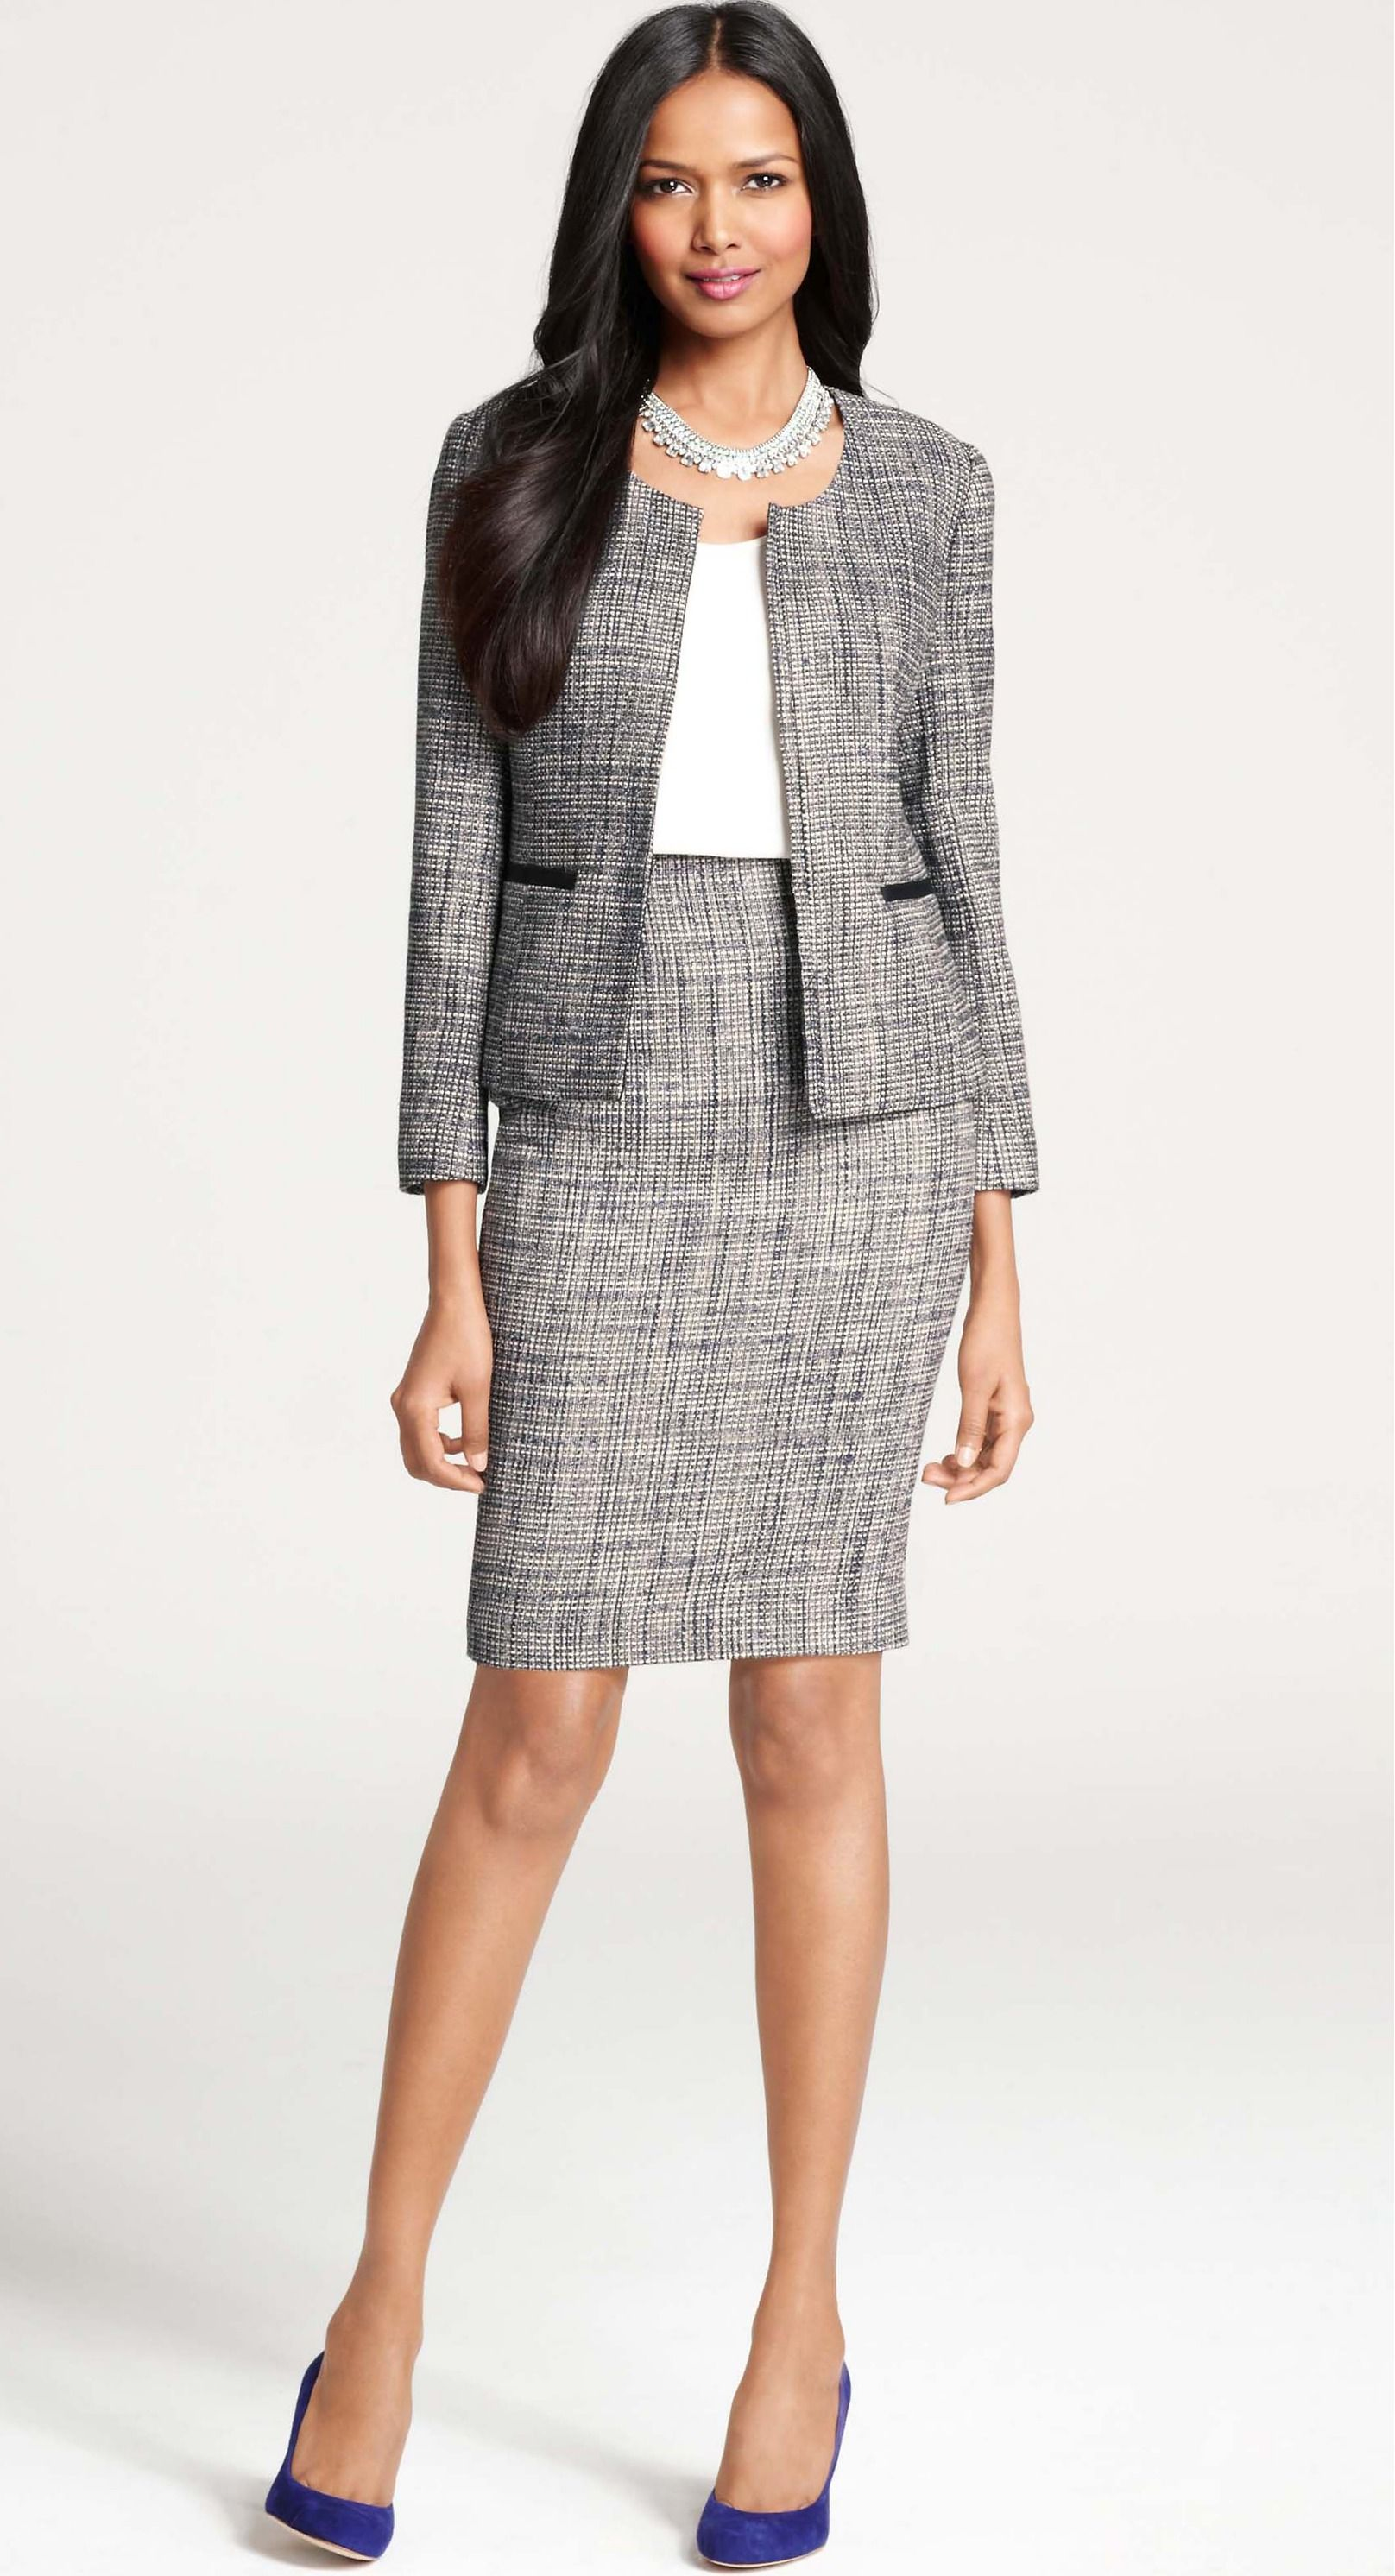 809220dca0 Ann Taylor - 293594WWB - Etienne Tweed Jacket. Ann Taylor - 293594WWB -  Etienne Tweed Jacket Business Attire